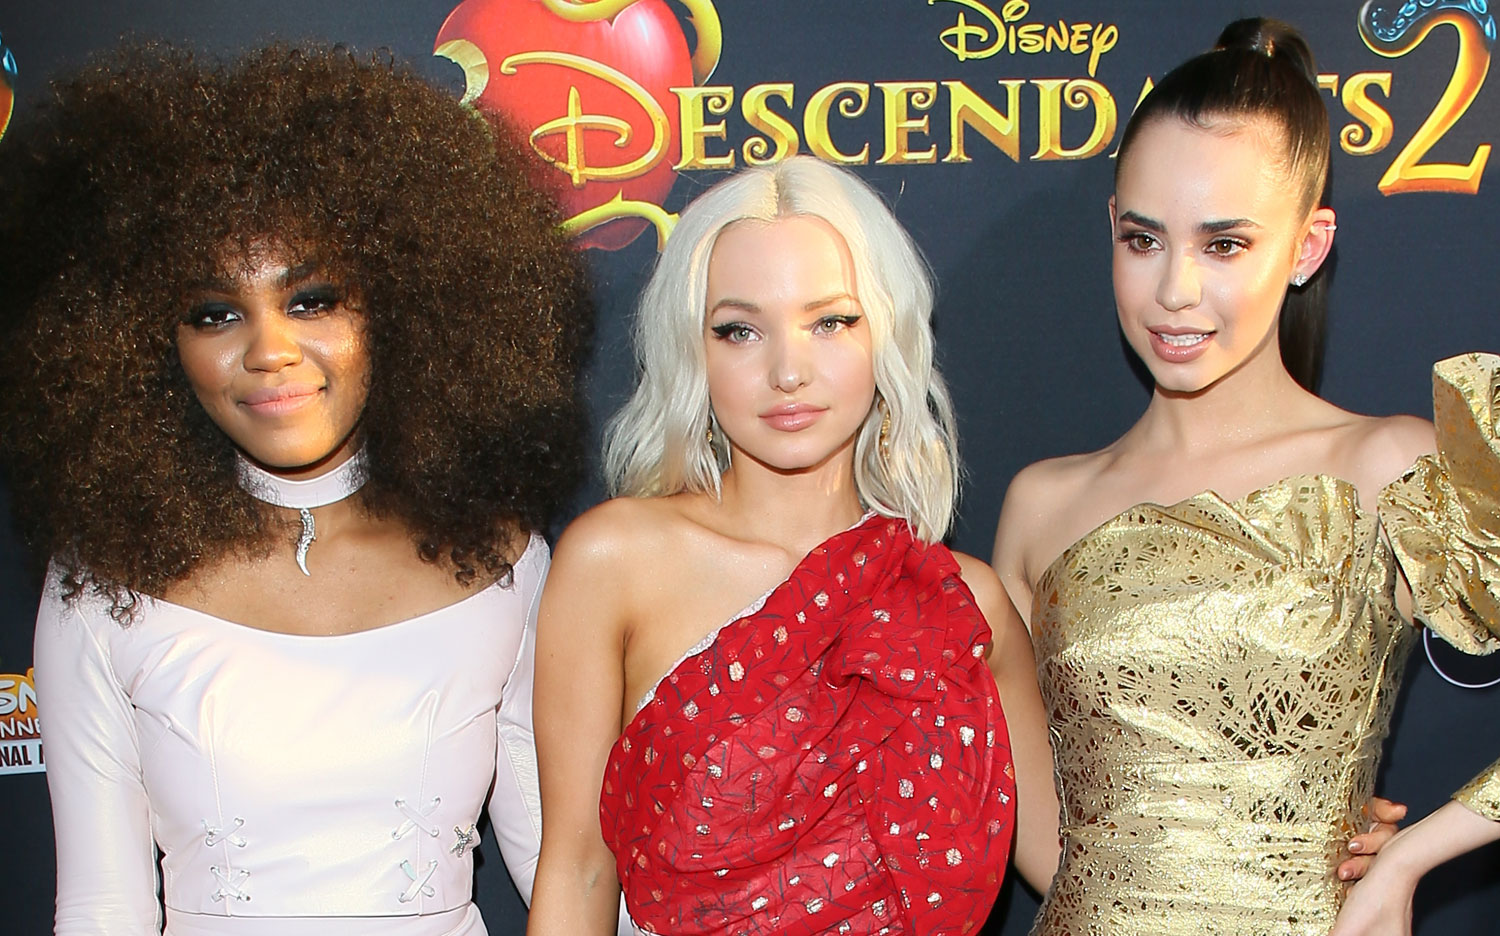 China mcclain breaking news and photos just jared jr page 5 - Descendants Dove Cameron Sofia Carson China Anne Mcclain Gush Over Each Other Exclusive